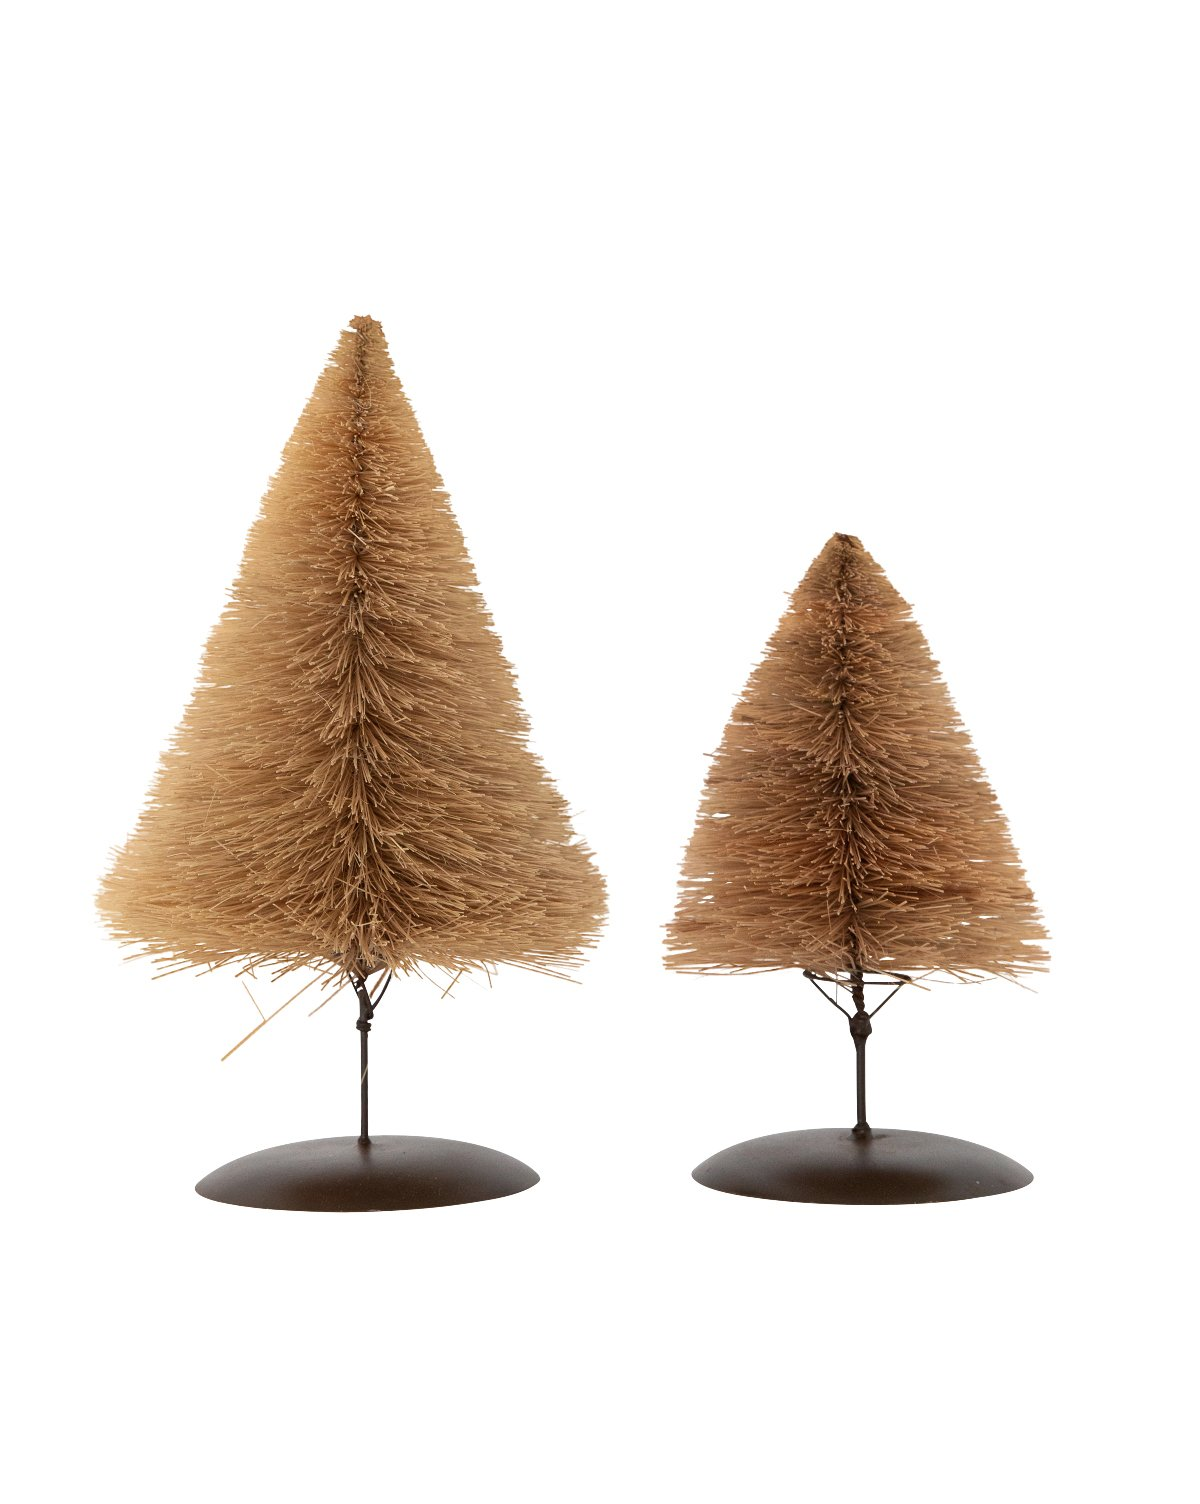 Bottle brush trees for the fireplace mantel - McGee & Co.